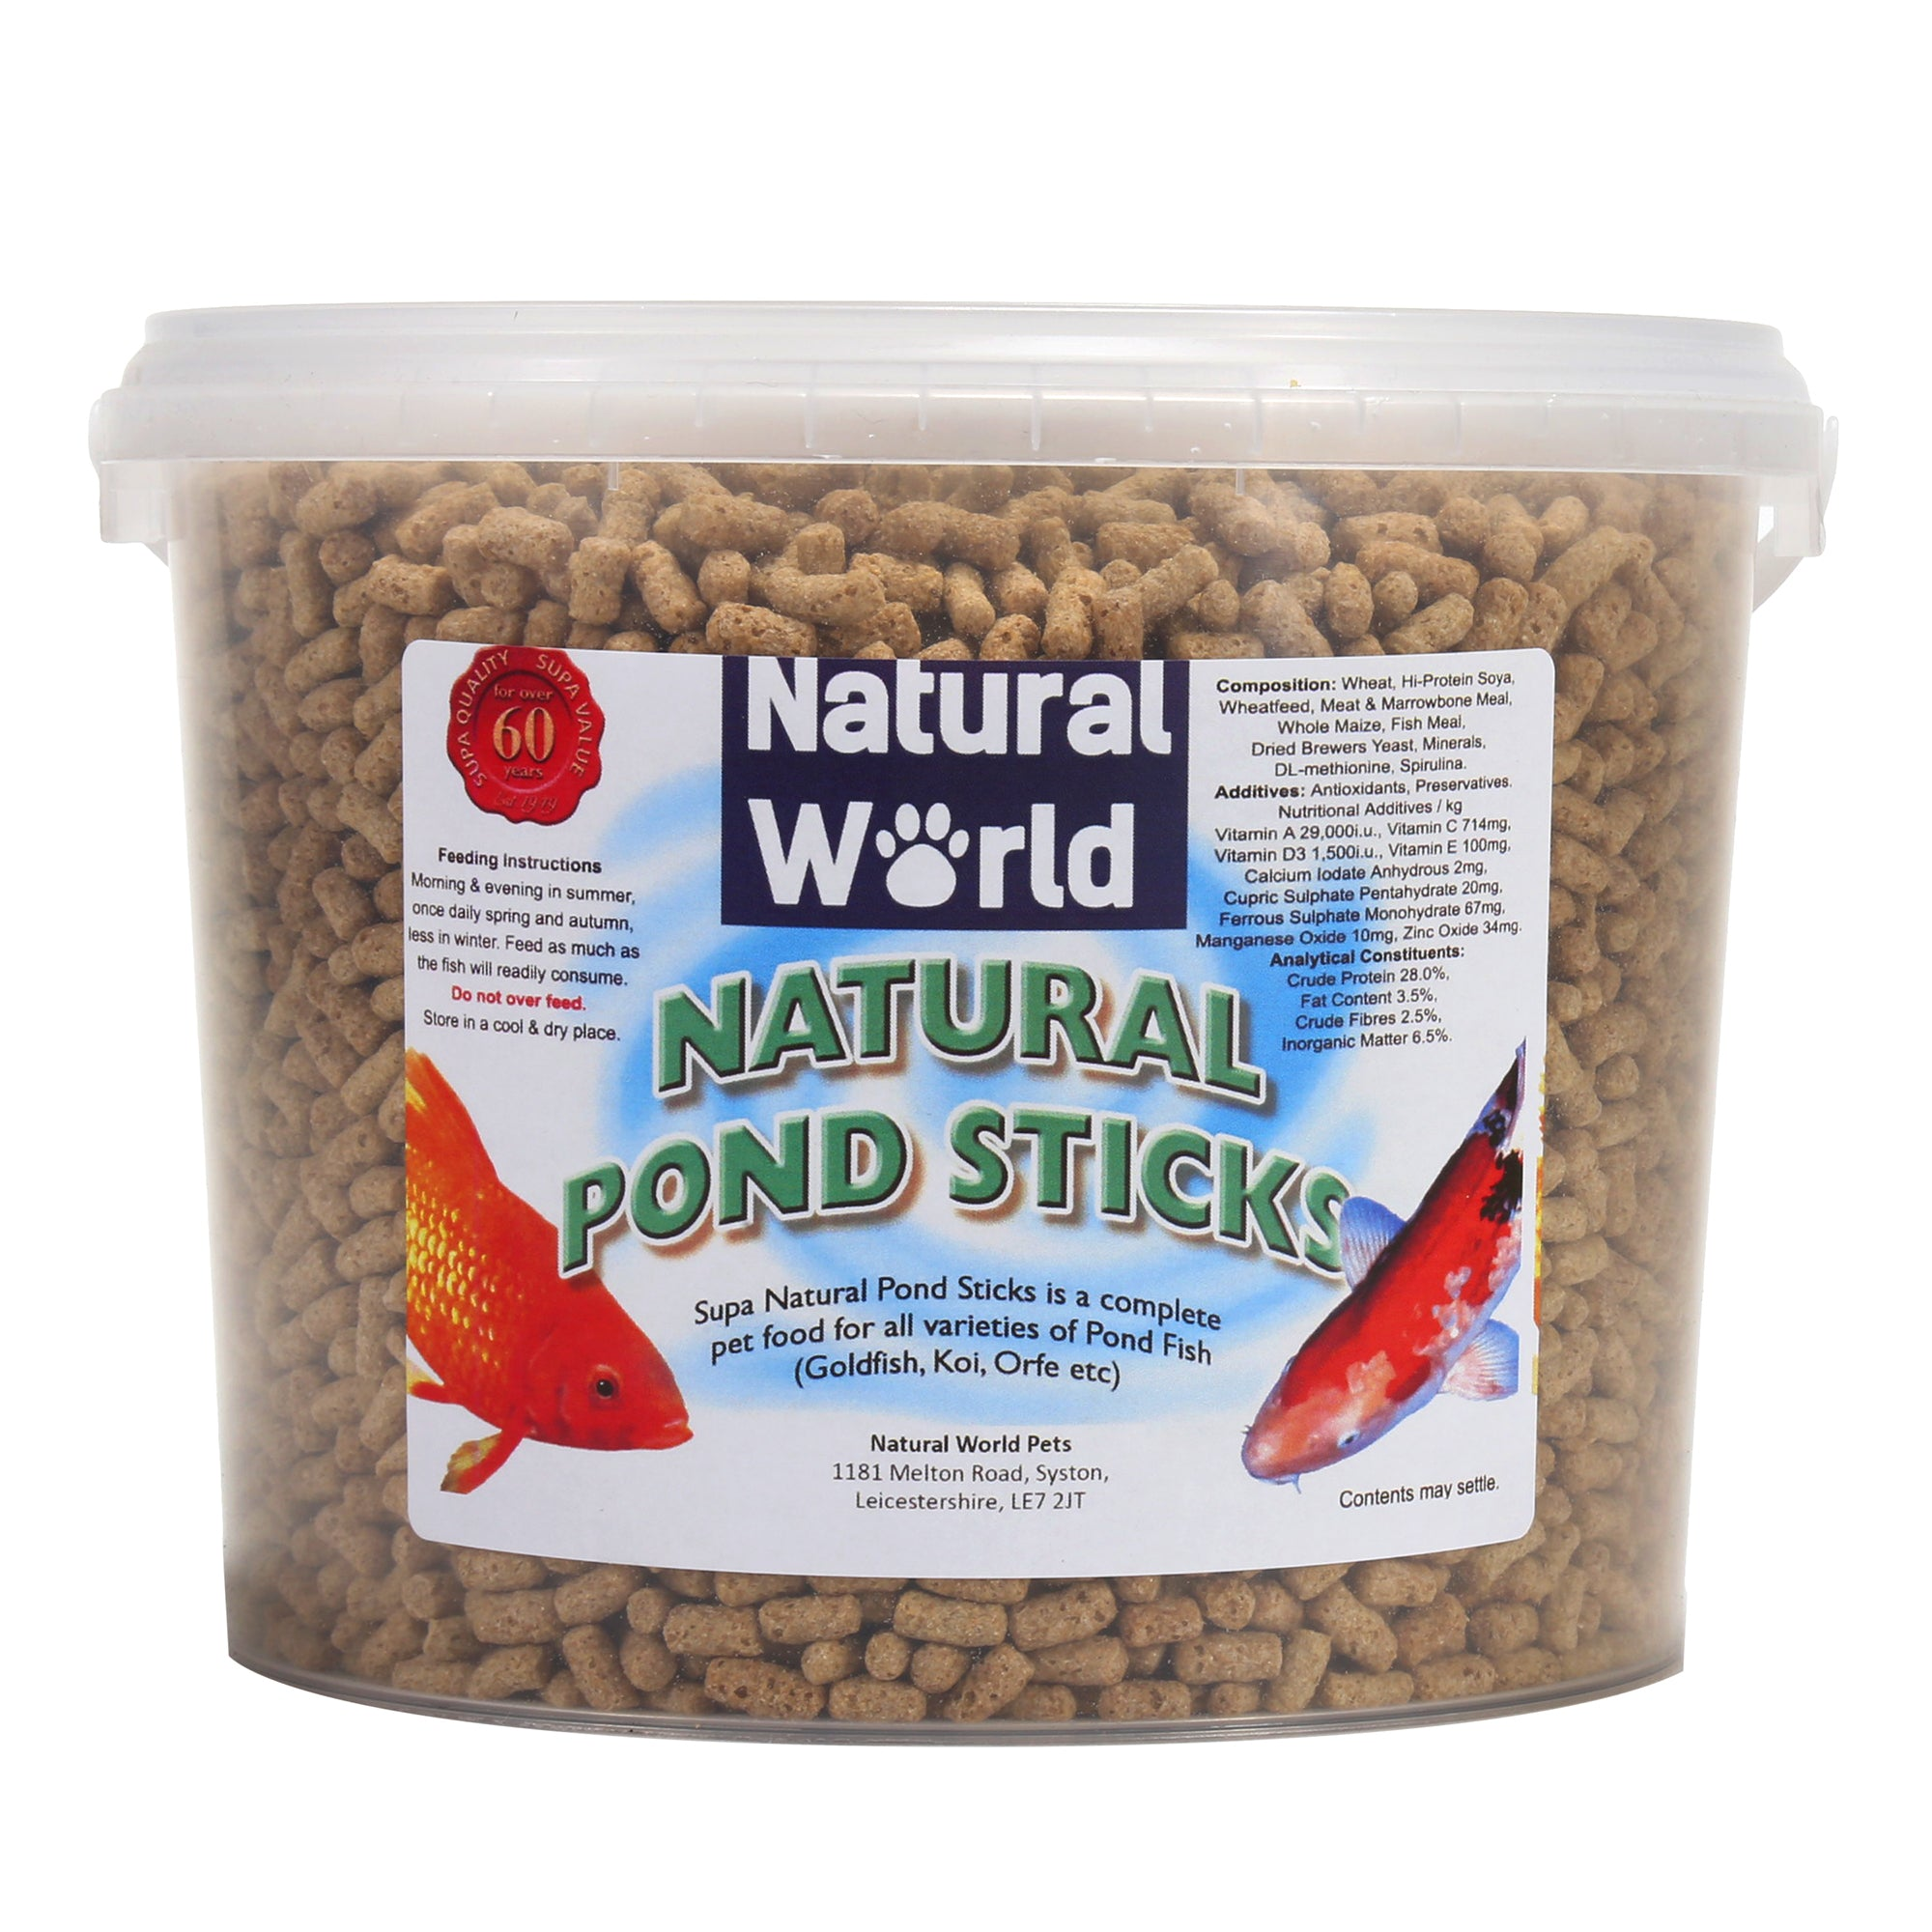 Natural World Pond Sticks